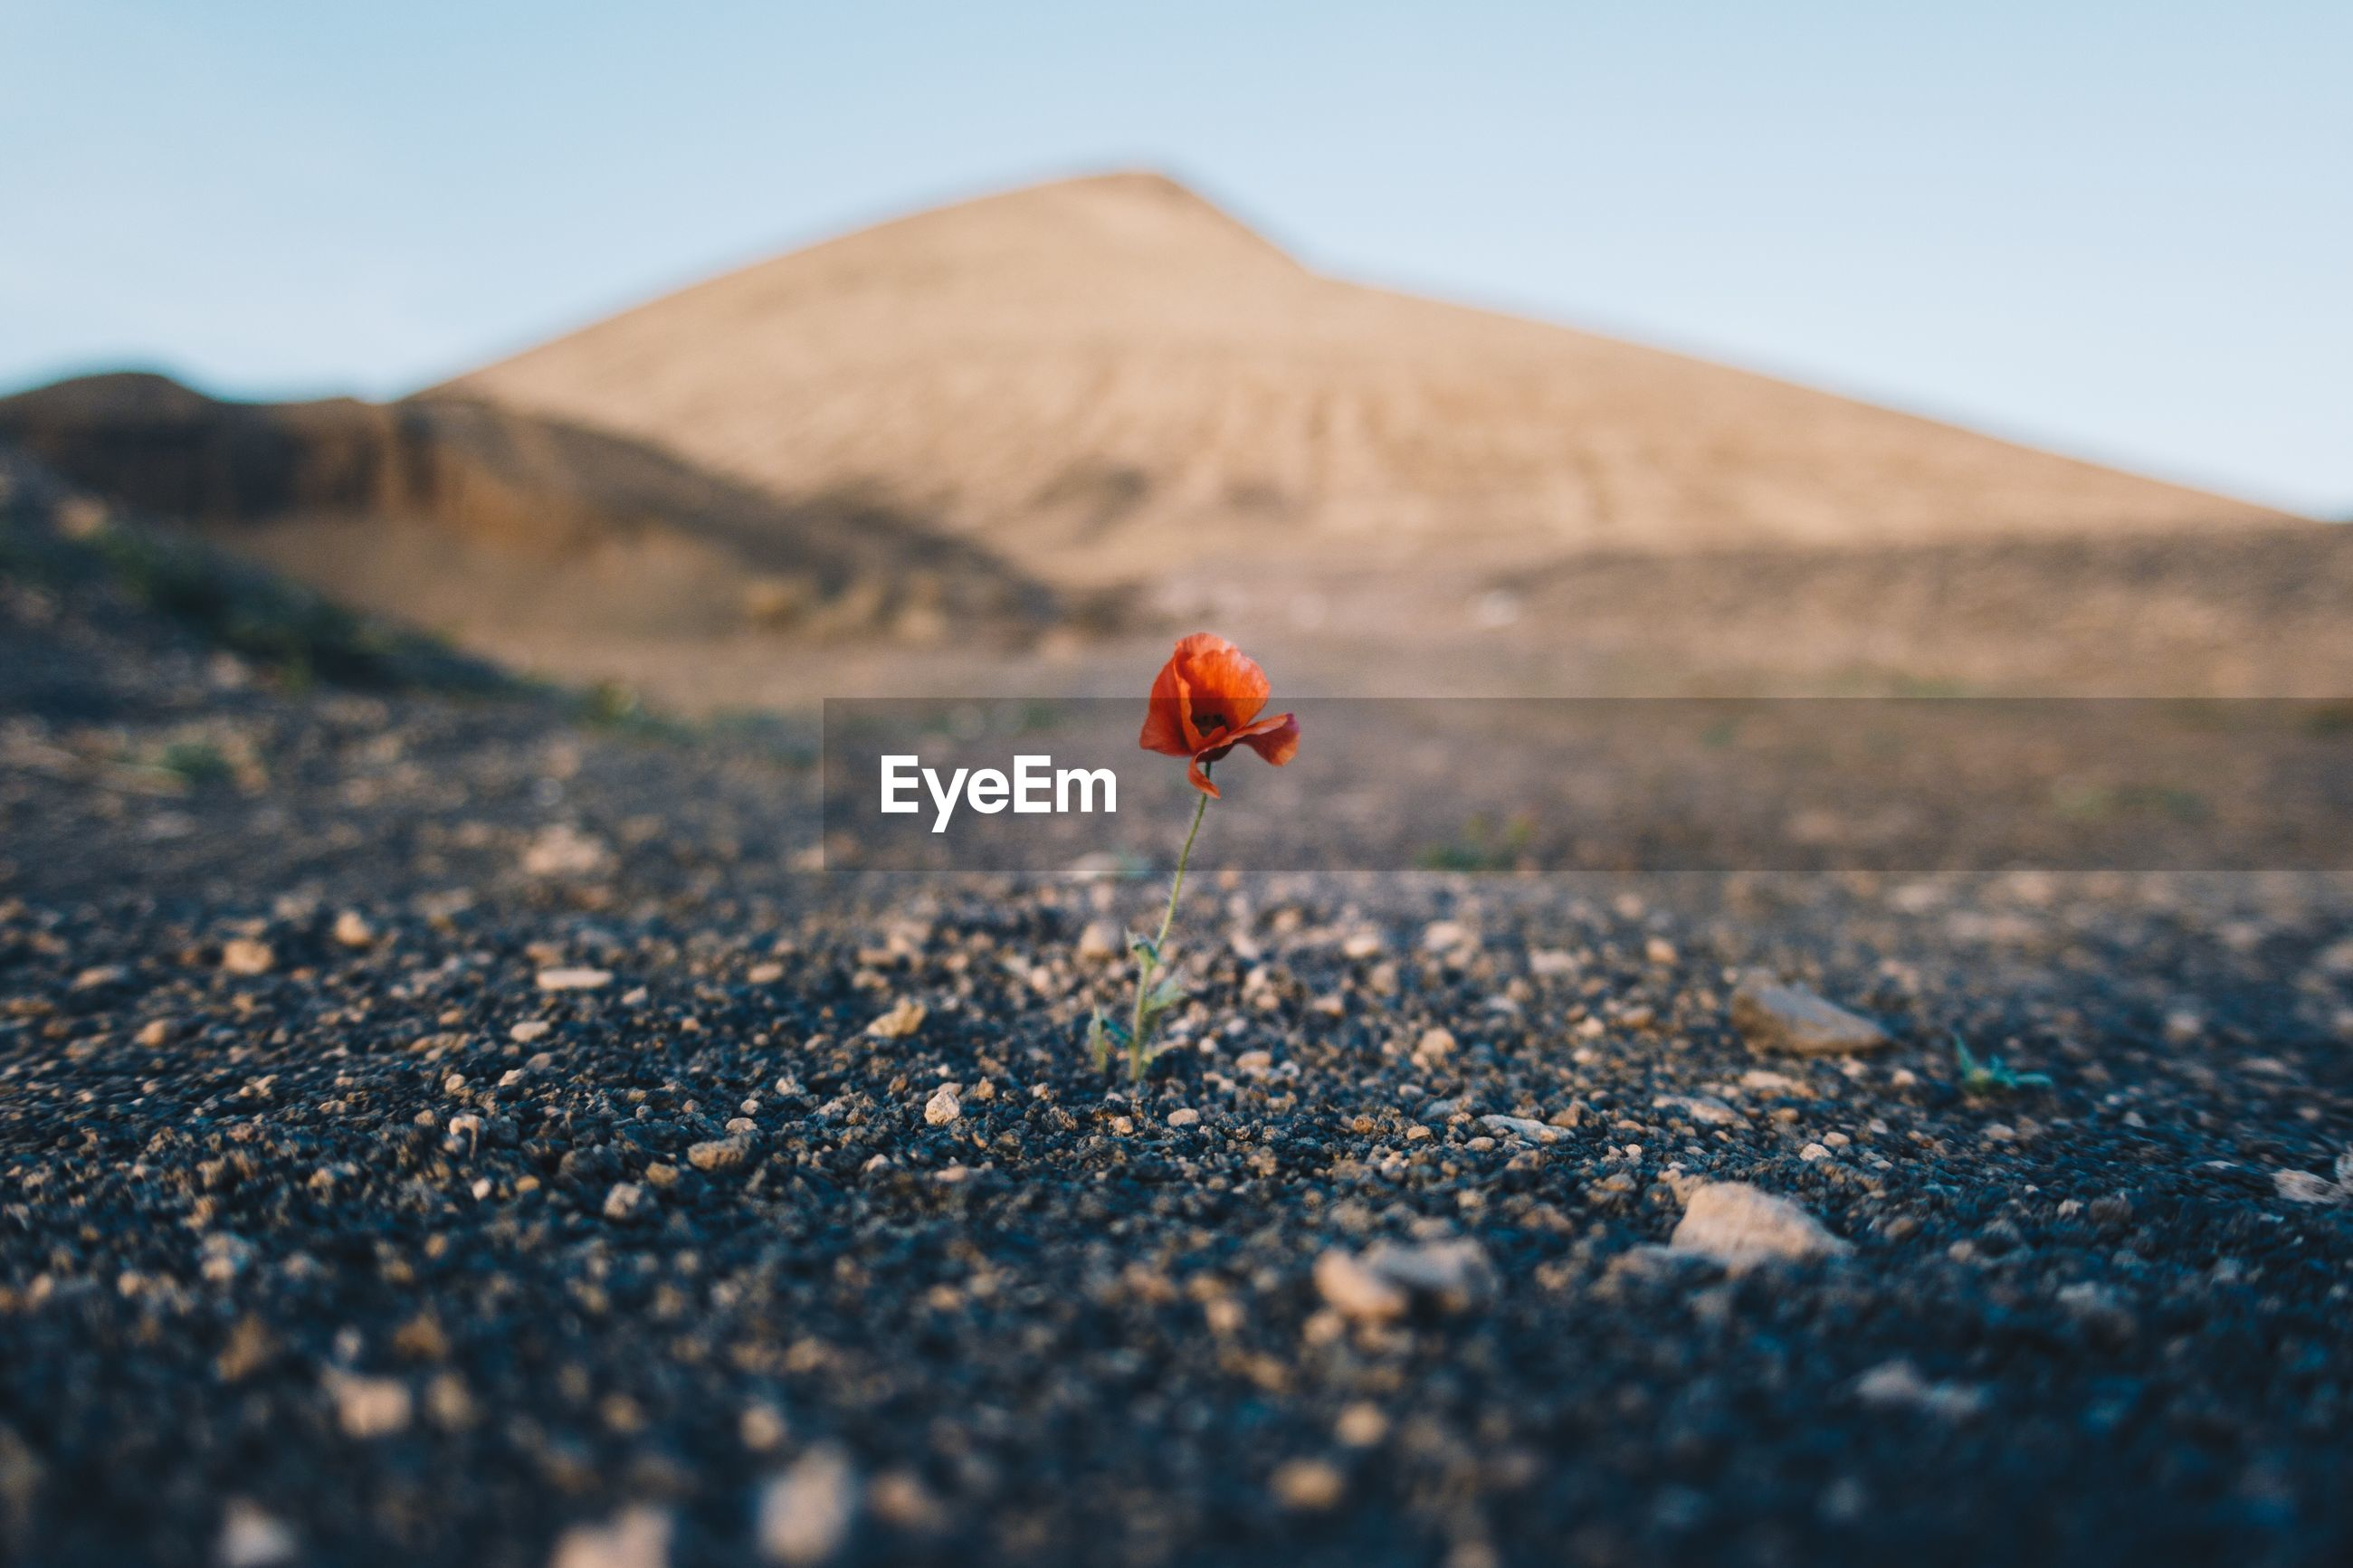 Flower blooming on land against mountains